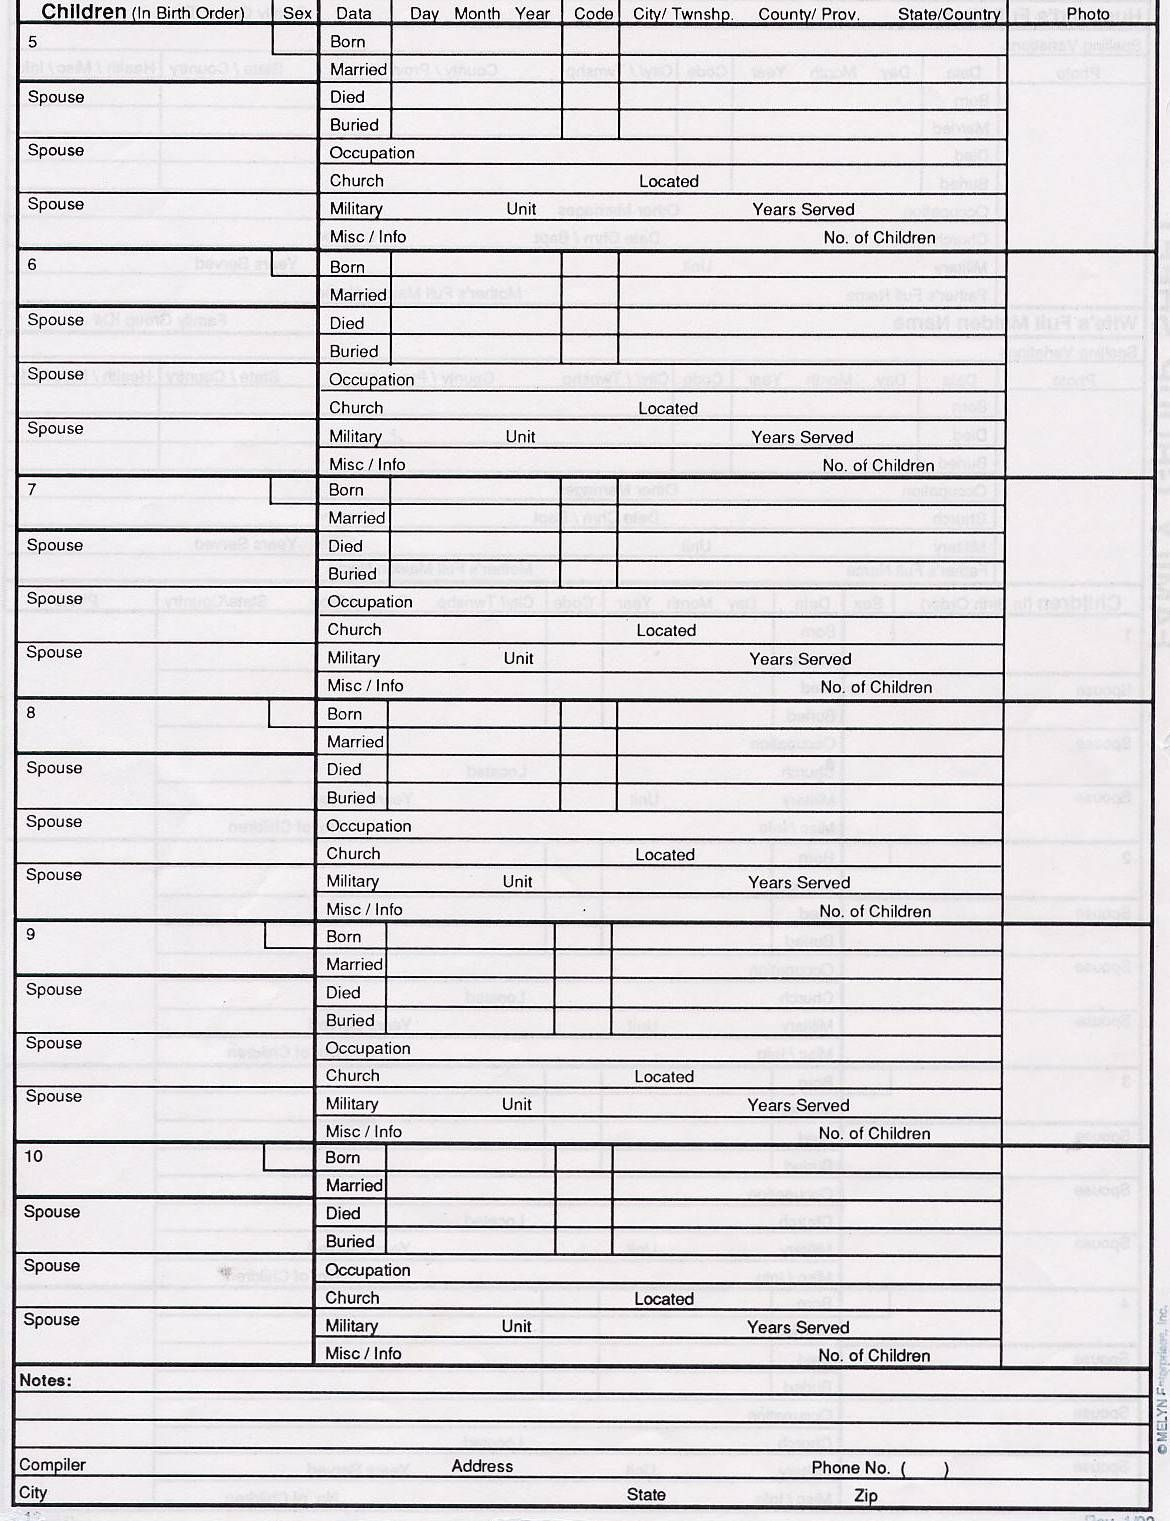 Family Group Sheet No 2 1 170 1 521 Pixels